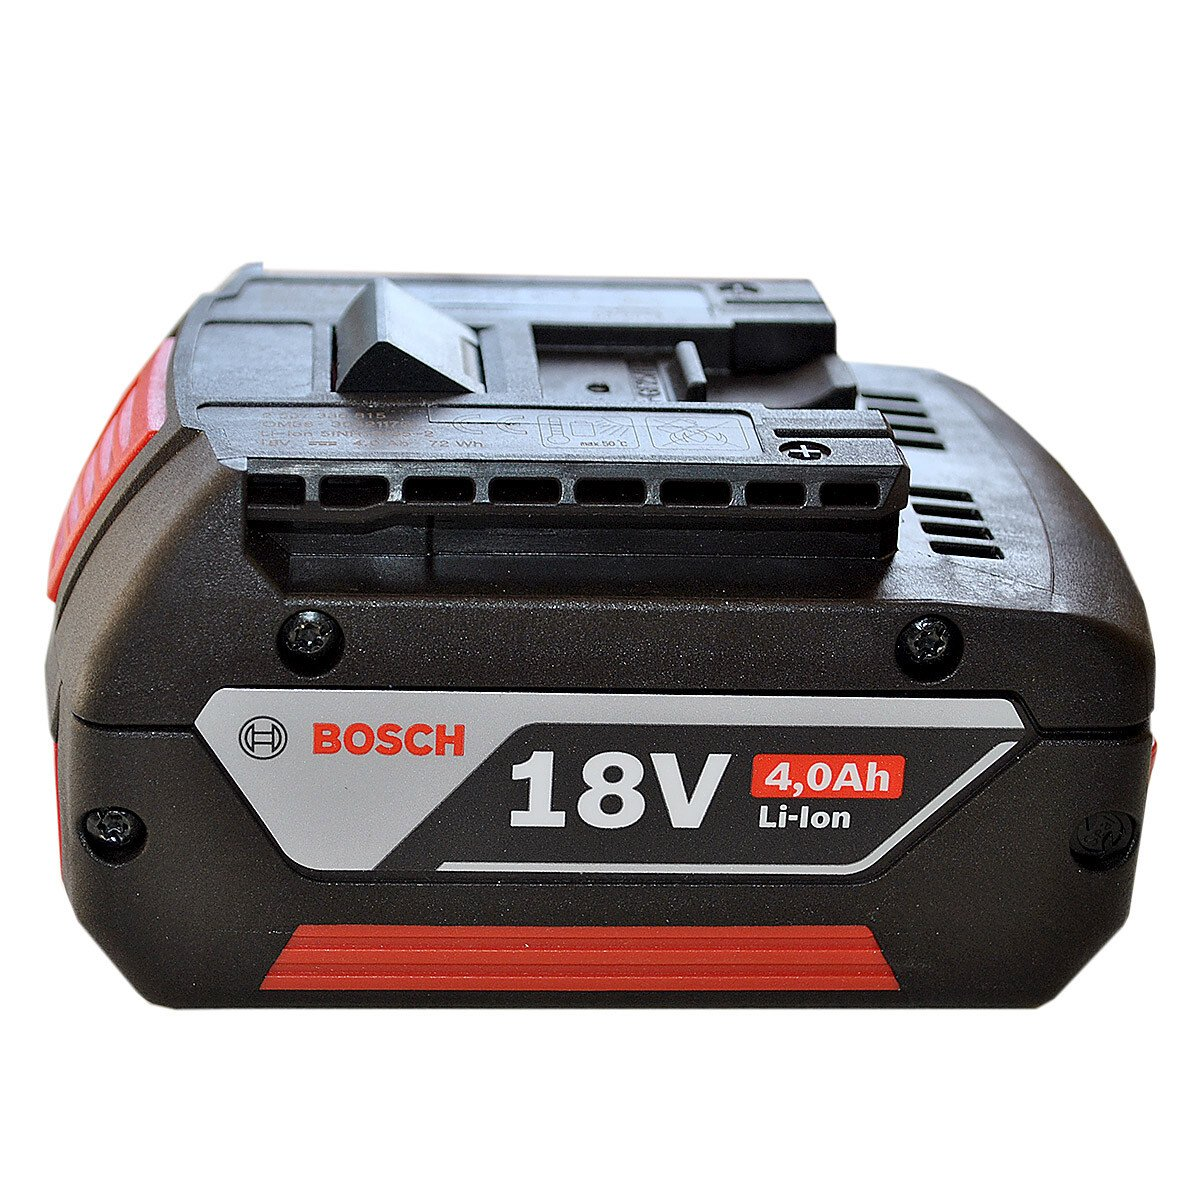 Bosch 1600Z00038 18V 4.0Ah Coolpack Battery